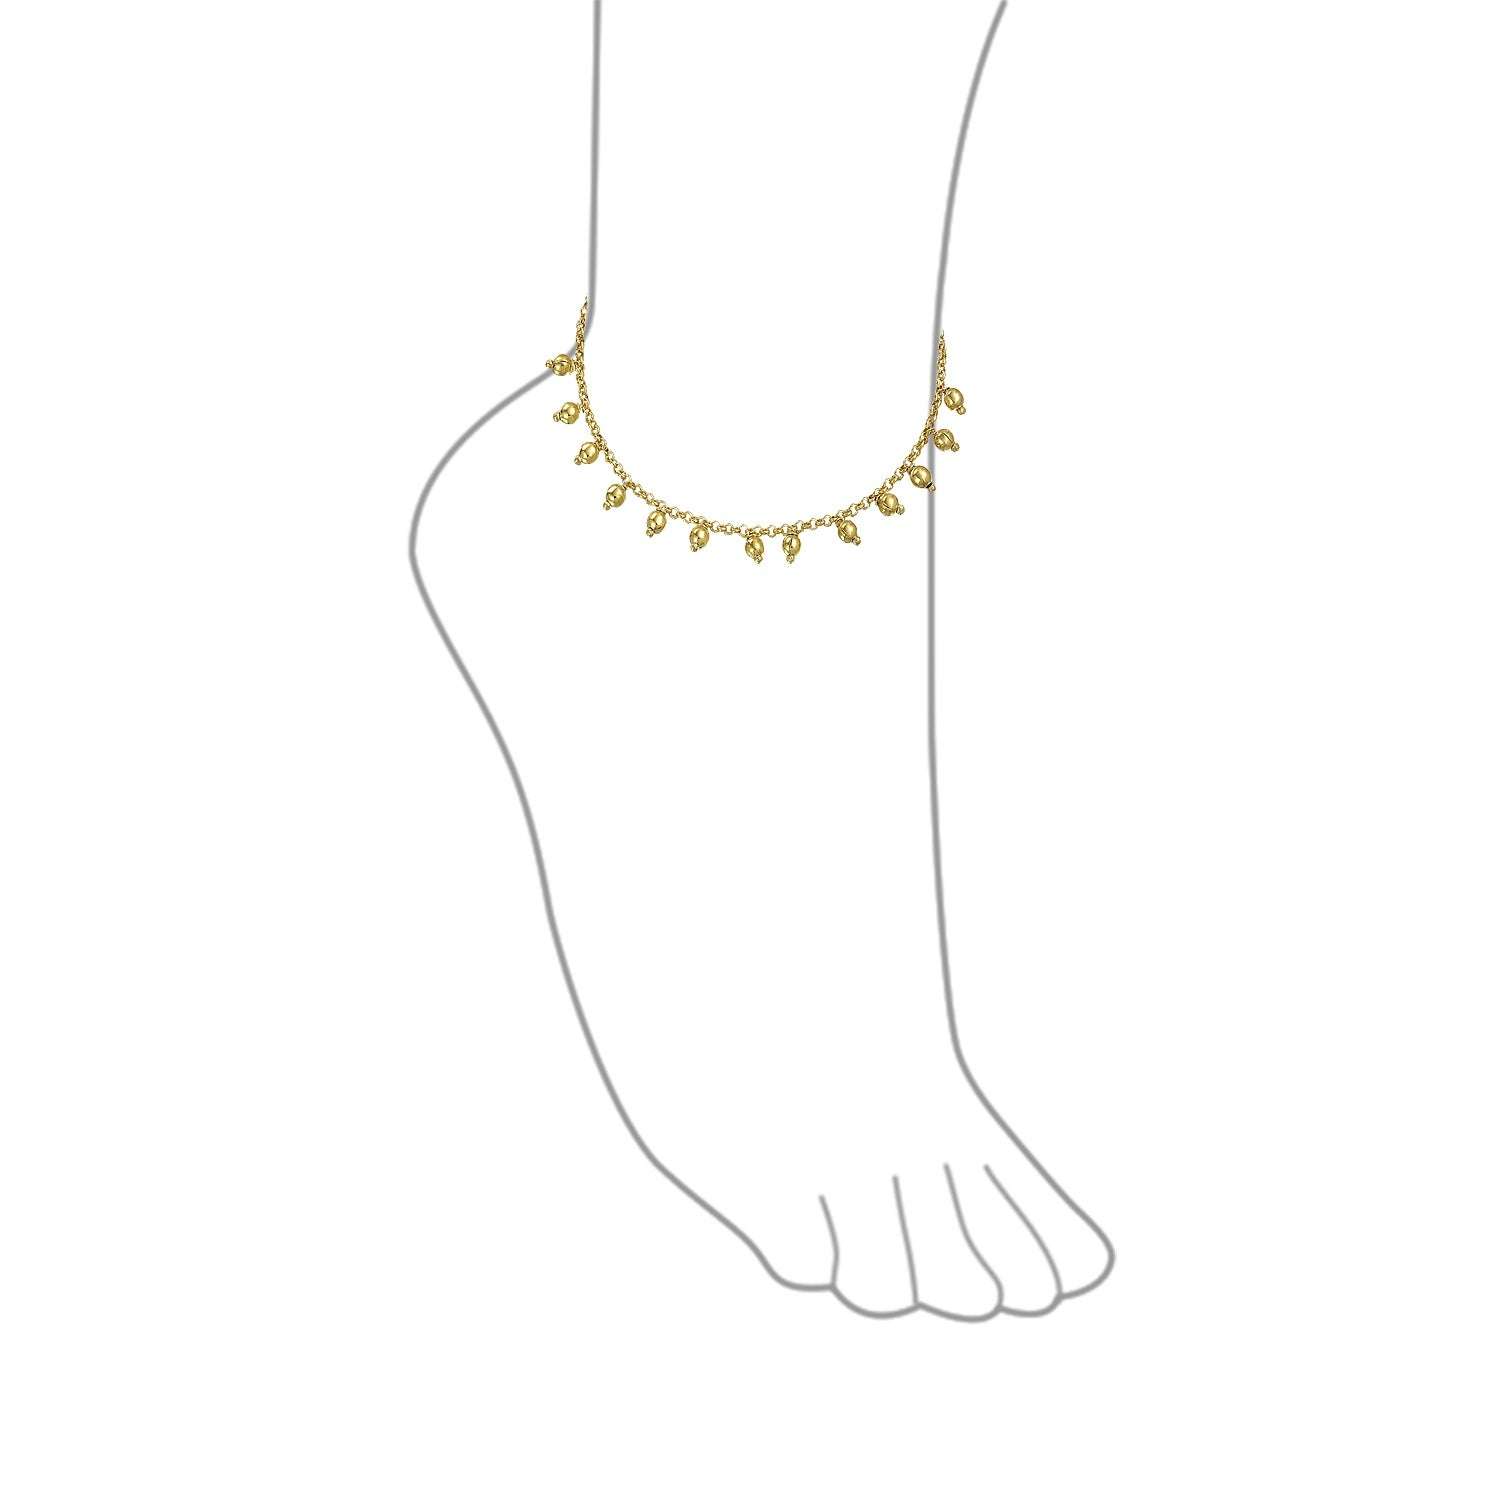 Bling Jewelry Three Multi Lucky Elephant Charm Anklet Ankle Bracelet for Women 18K Gold Plated Brass 9.5Inch